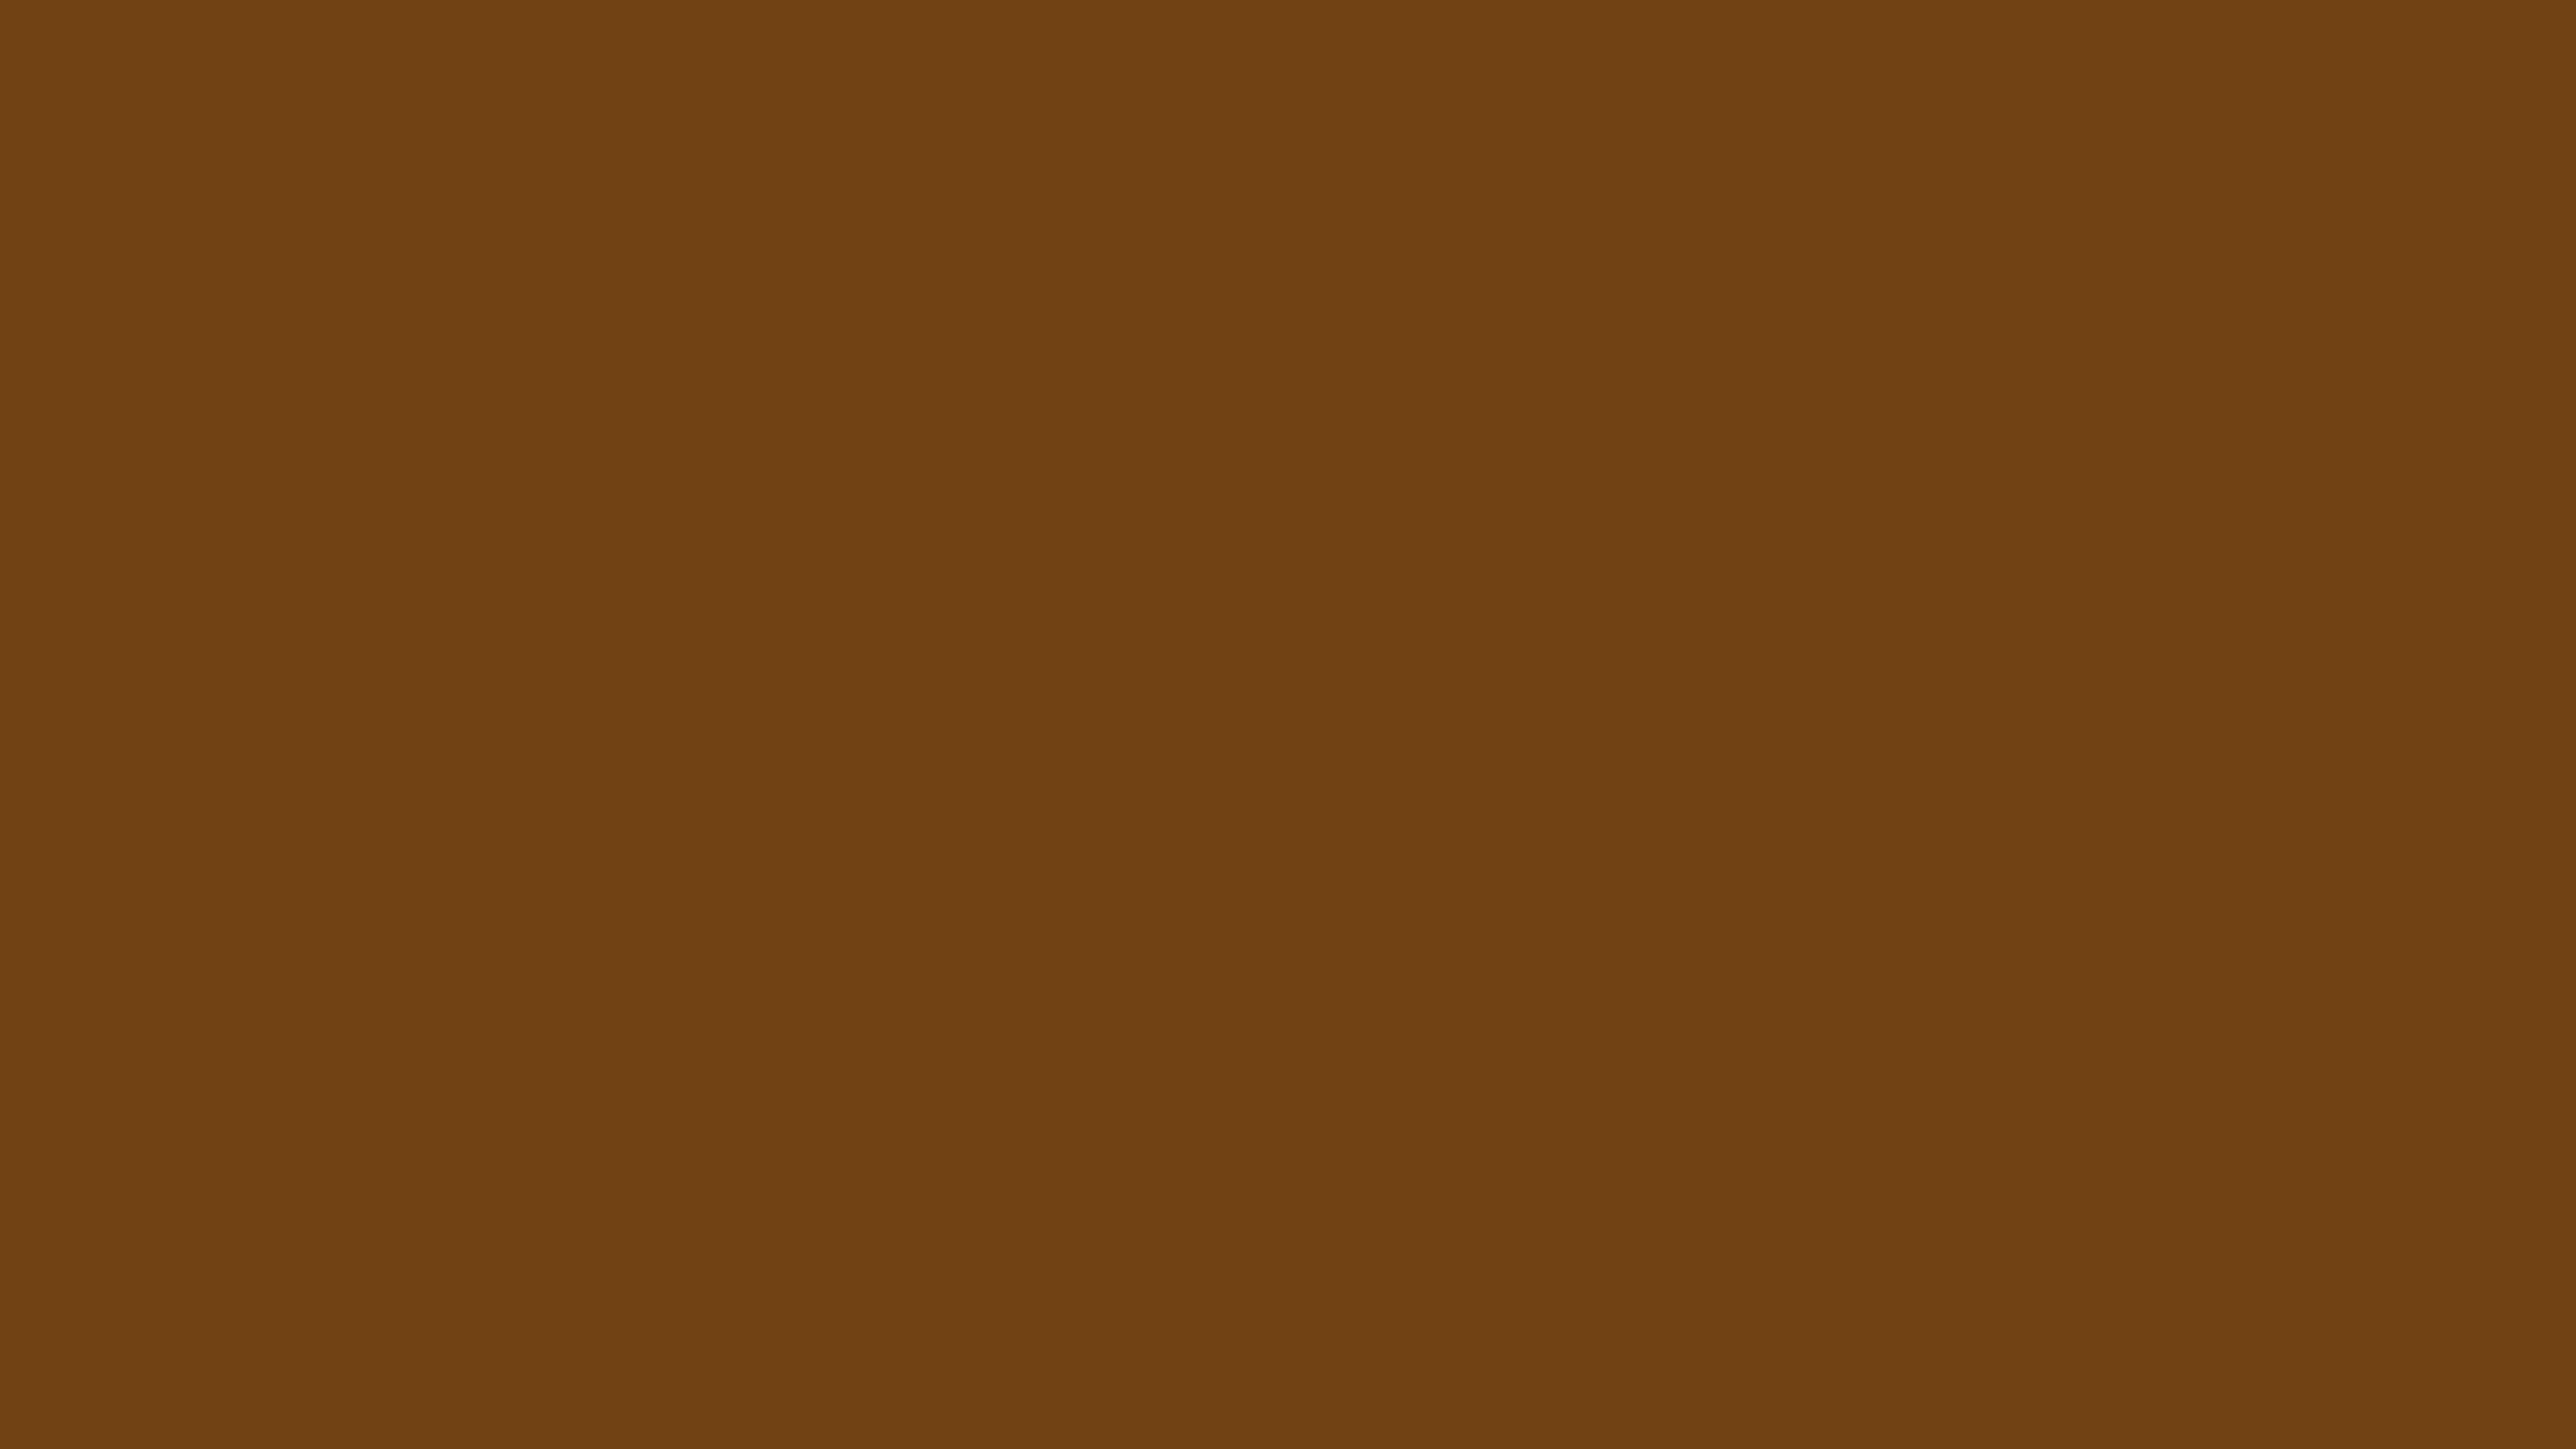 5120x2880 Sepia Solid Color Background